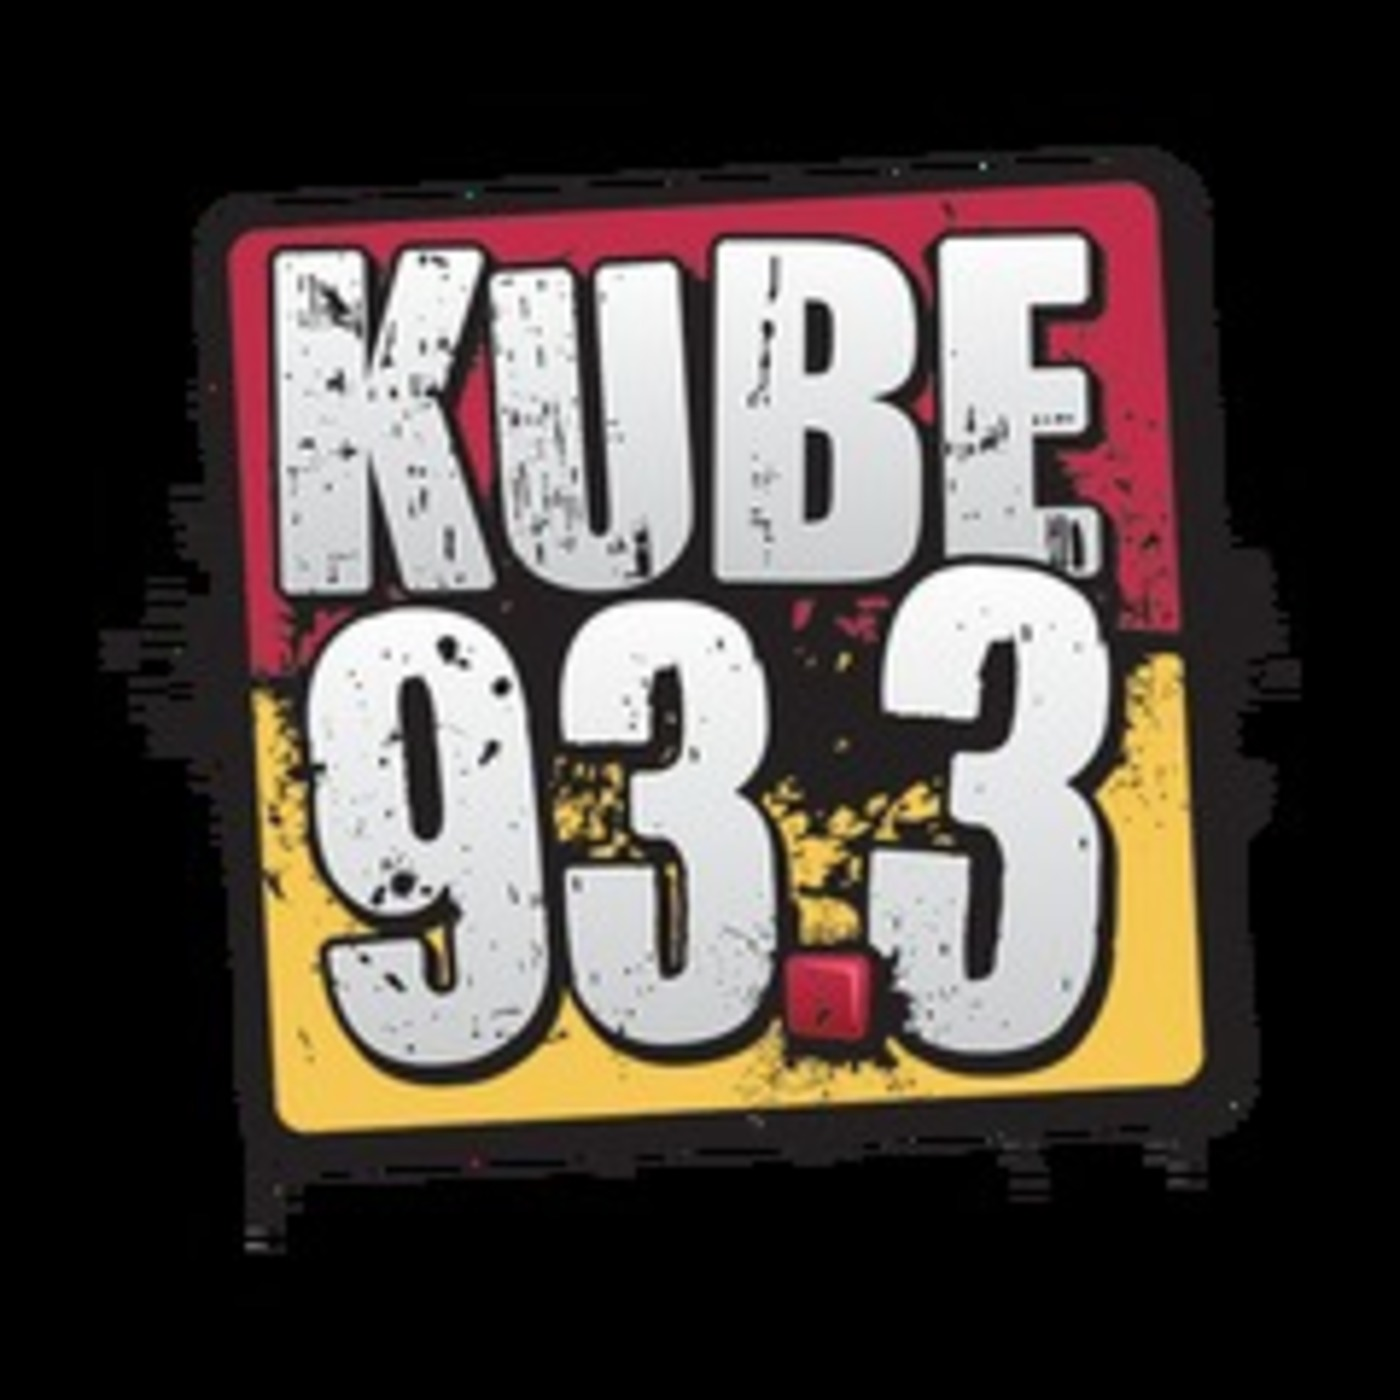 Better Now By Post Malone Mp3: KUBE933 Sat Night Block Party Ep.17 Dj Phase's Podcast